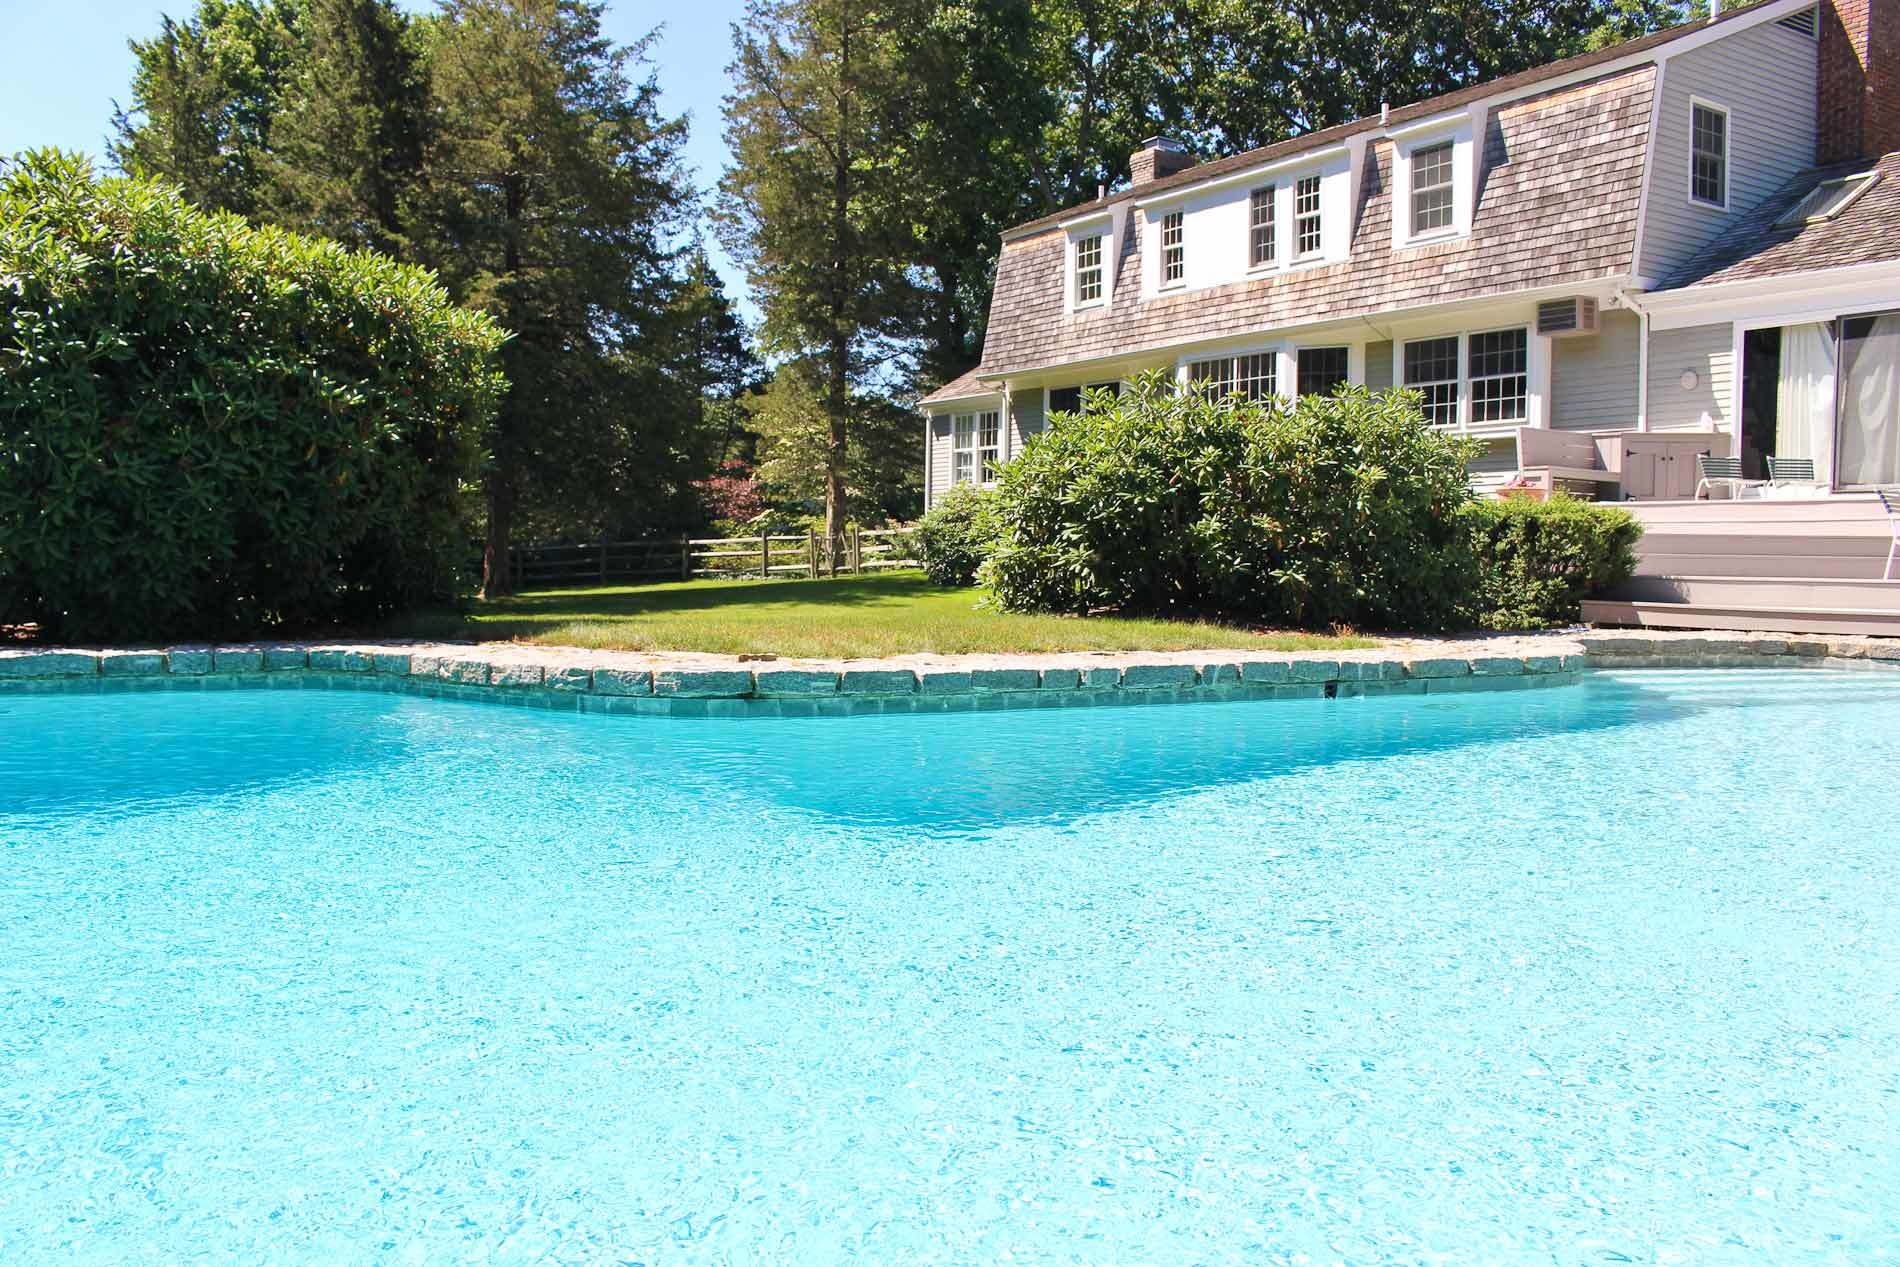 Homes With Swimming Pool For Sale In Danbury Ct Find And